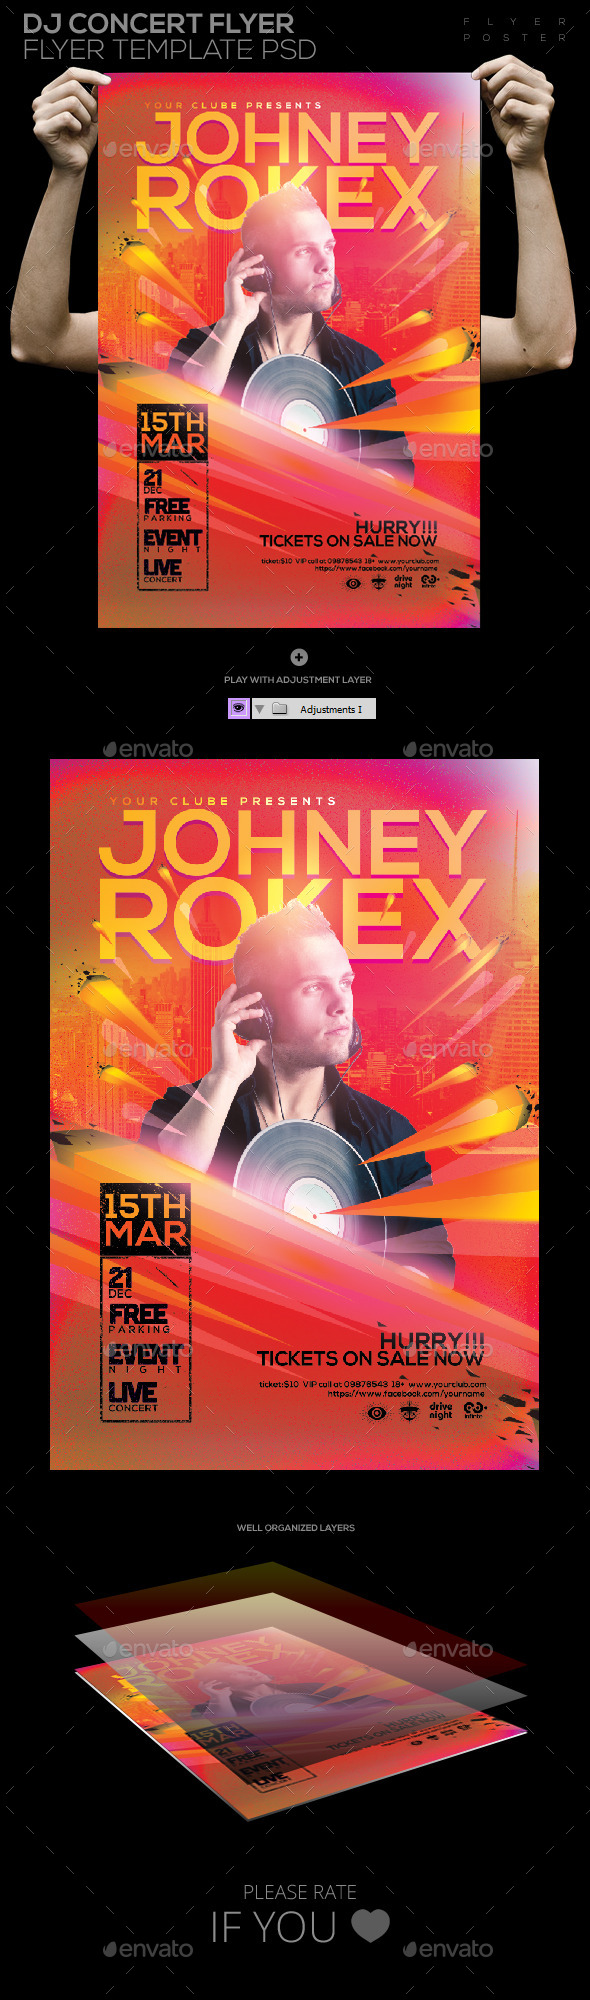 GraphicRiver Dj Concert Flyer Template PSD 10875915